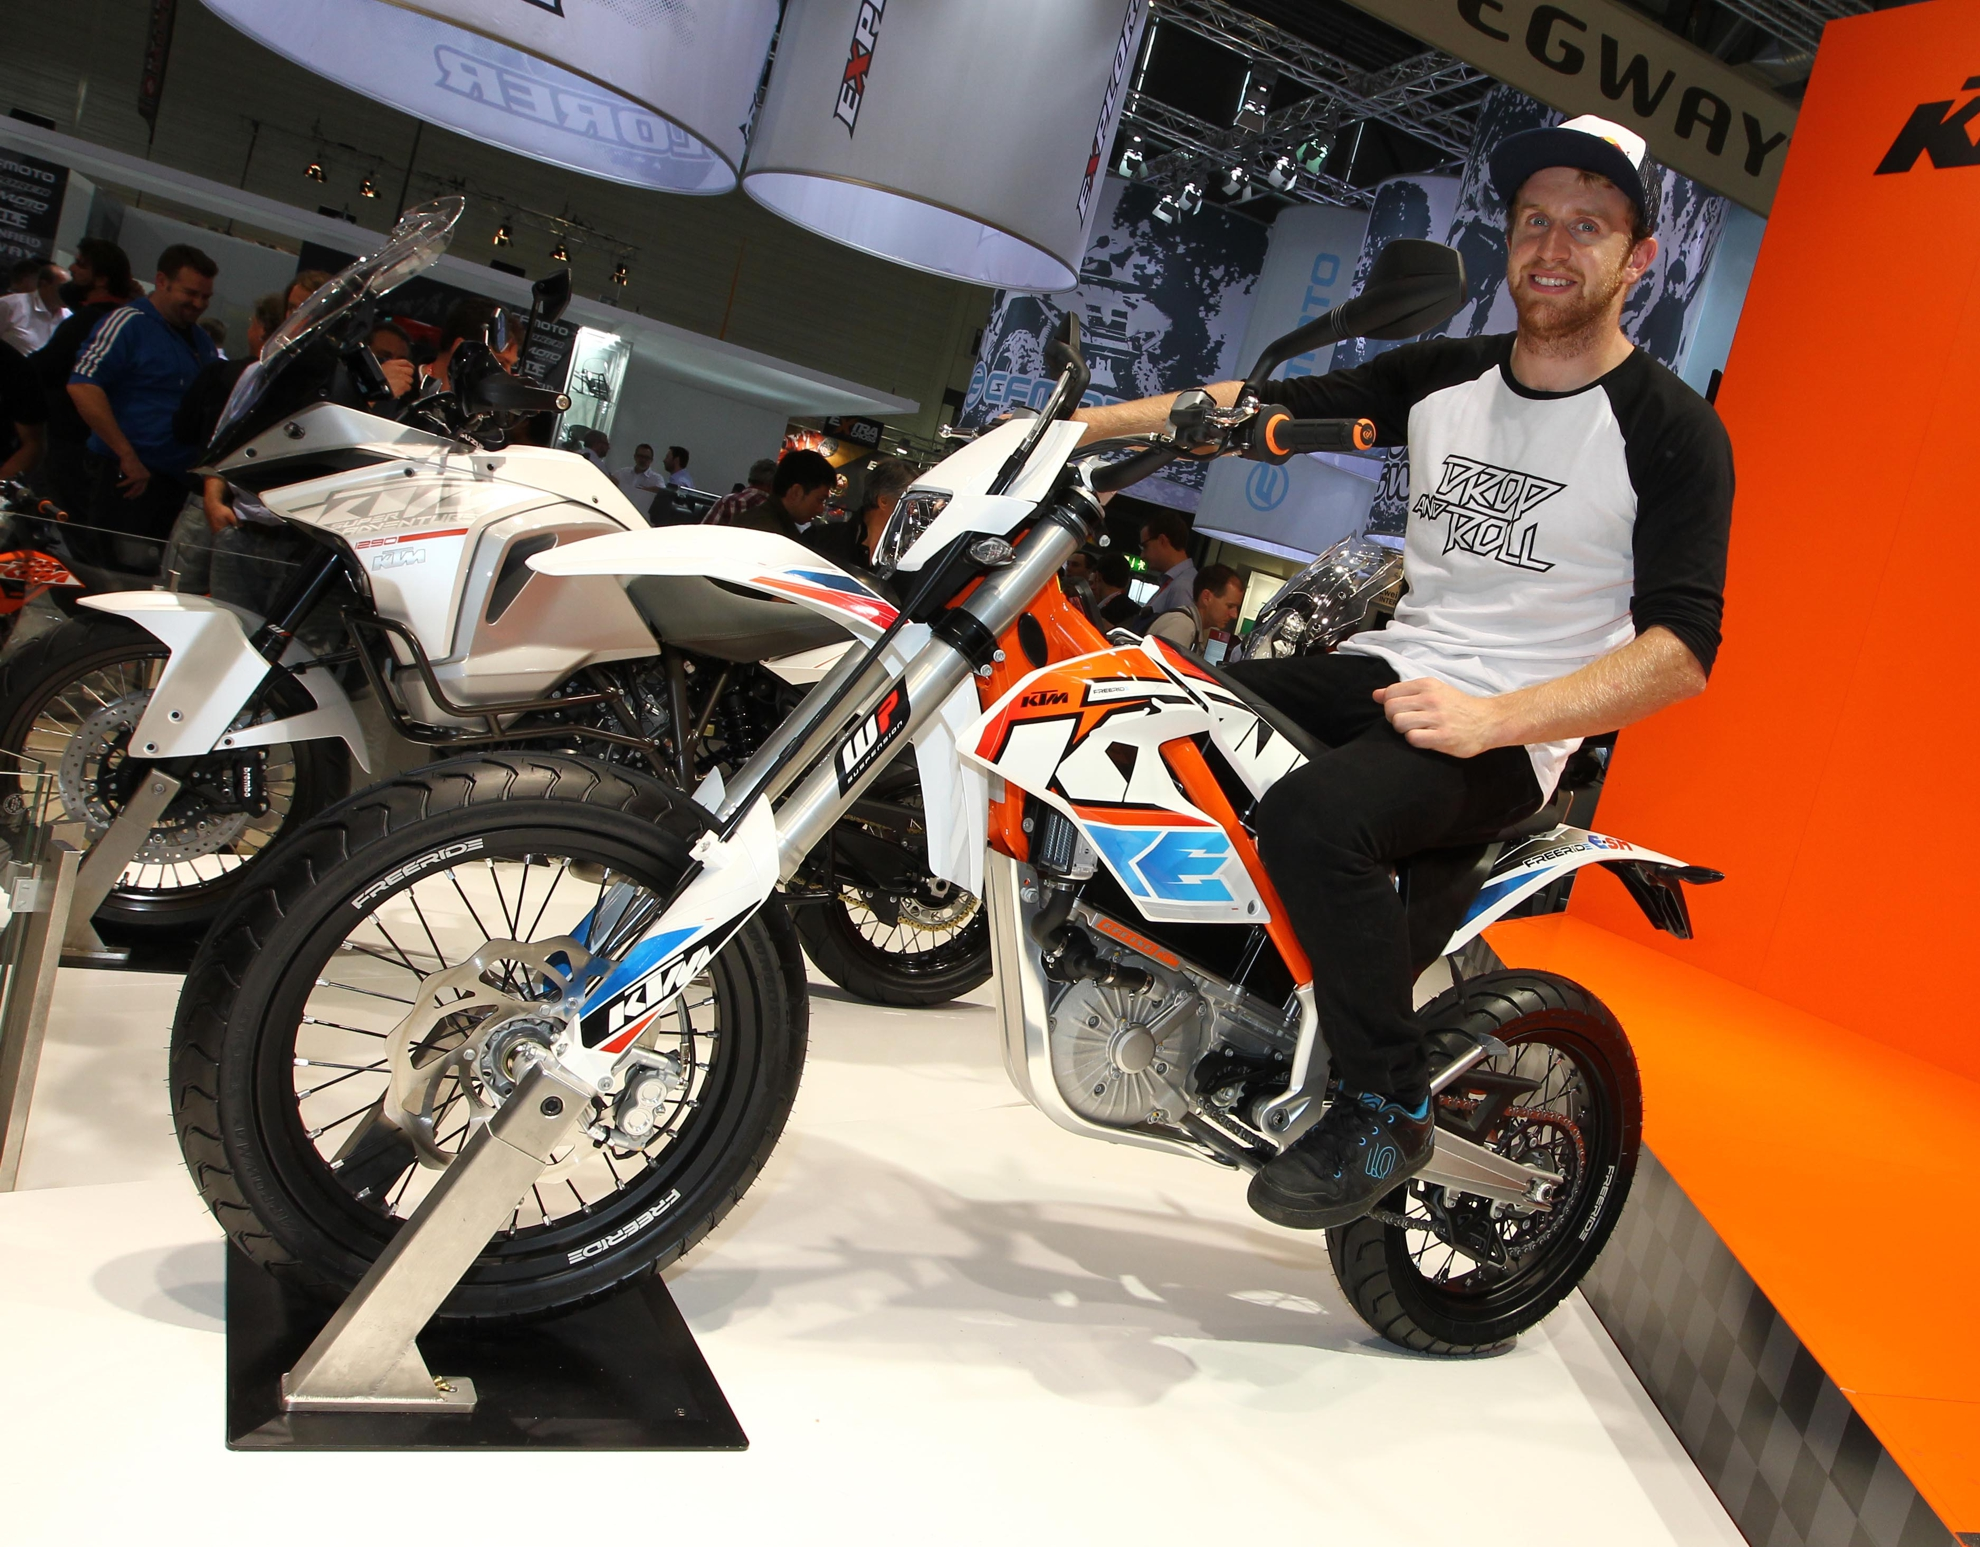 KTM-Intermot-Motorcycle-Show